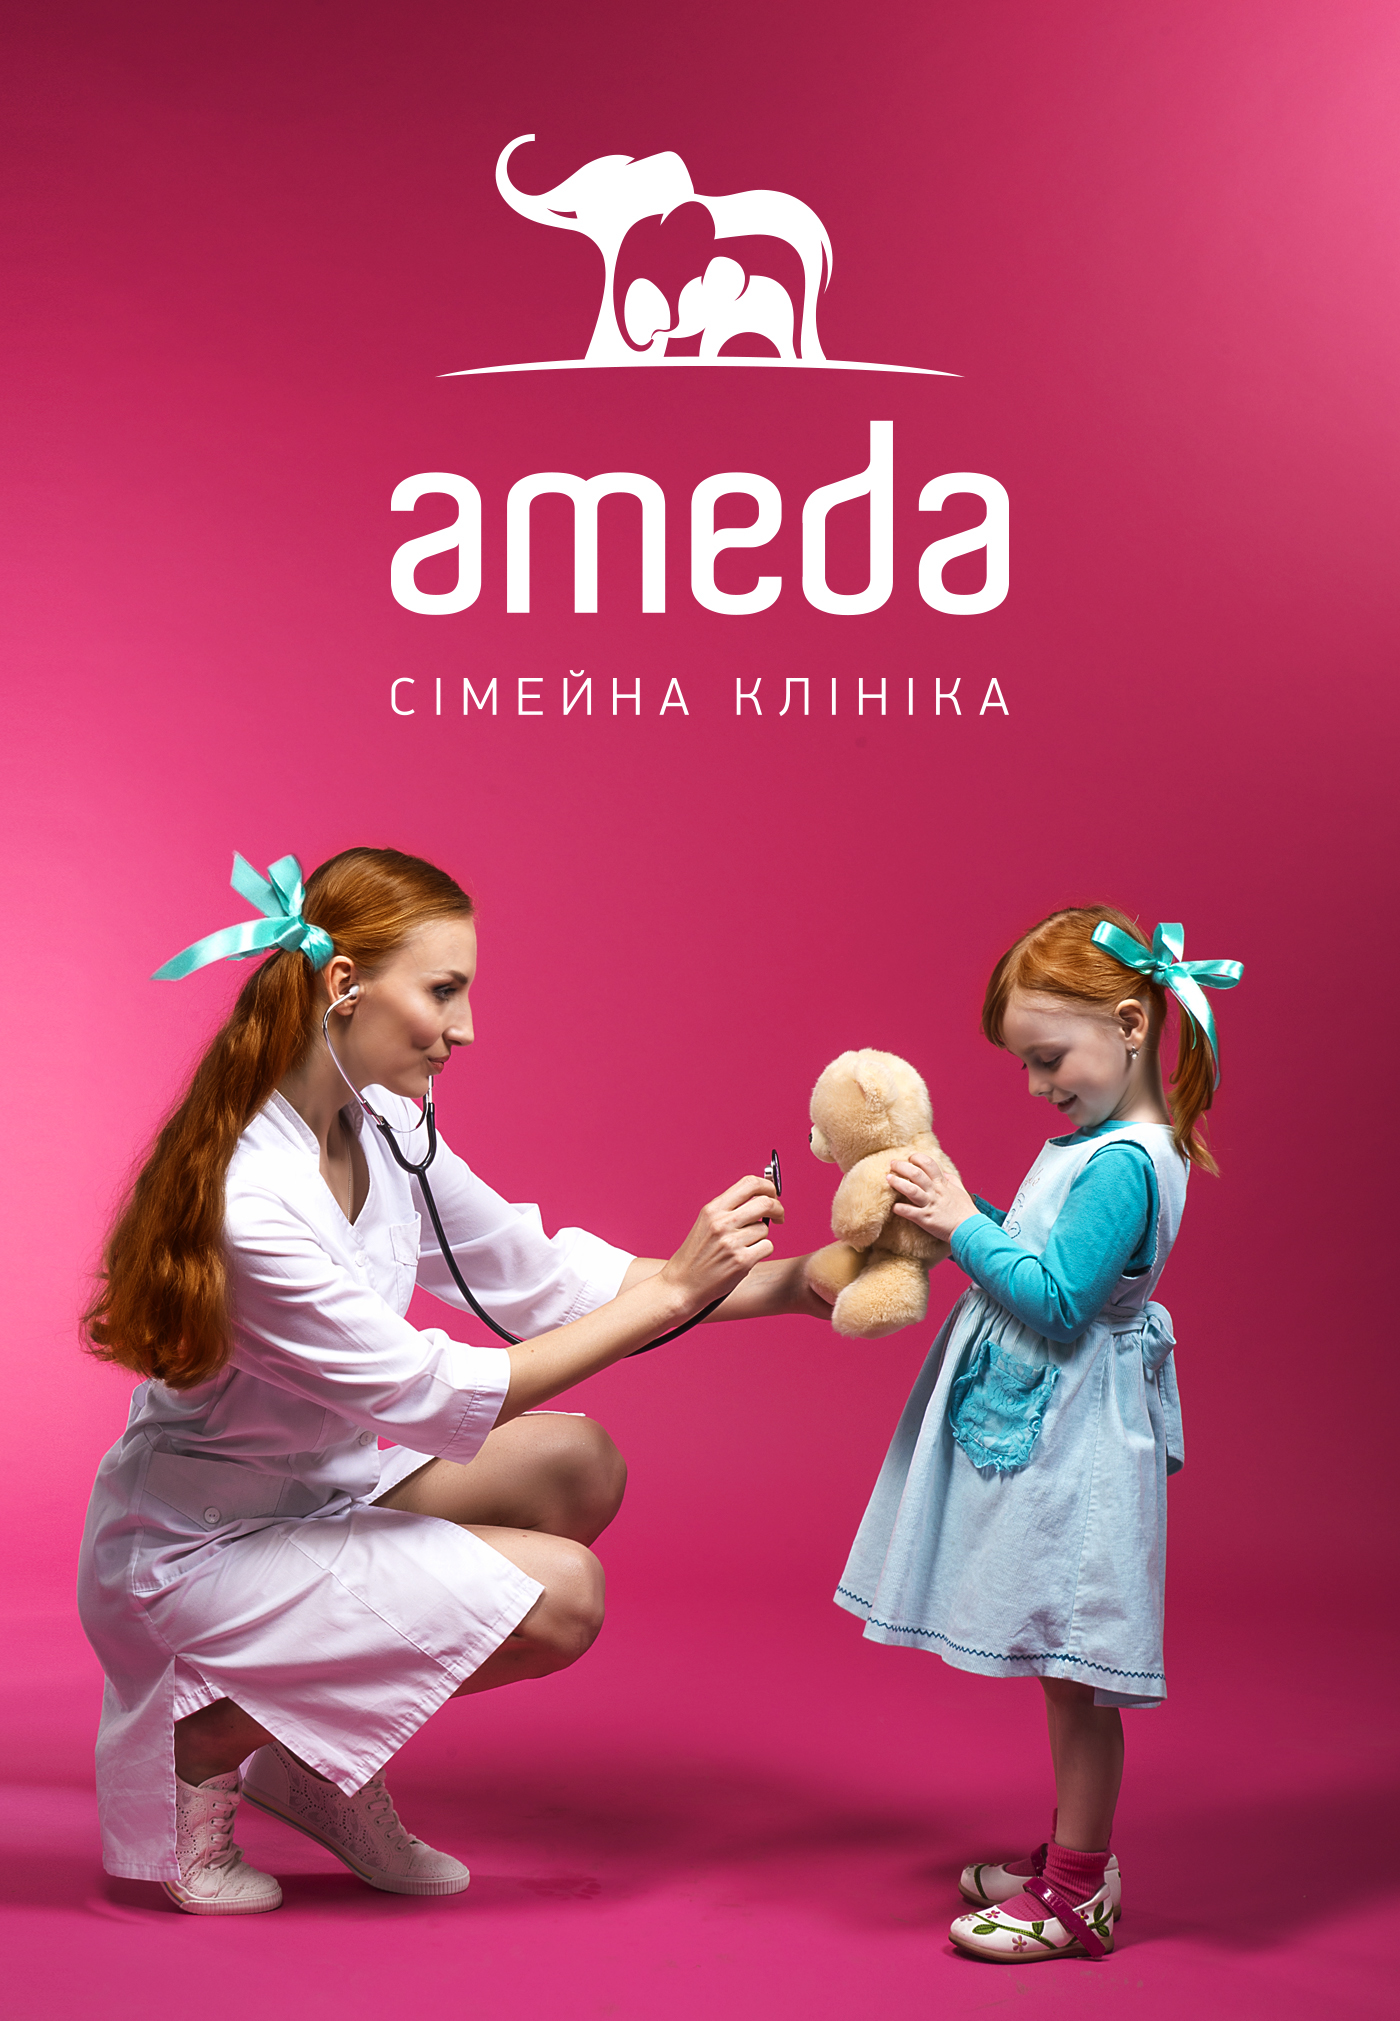 Ameda Breastpump & Accessories #Giveaway - Our Piece of EarthOur ...